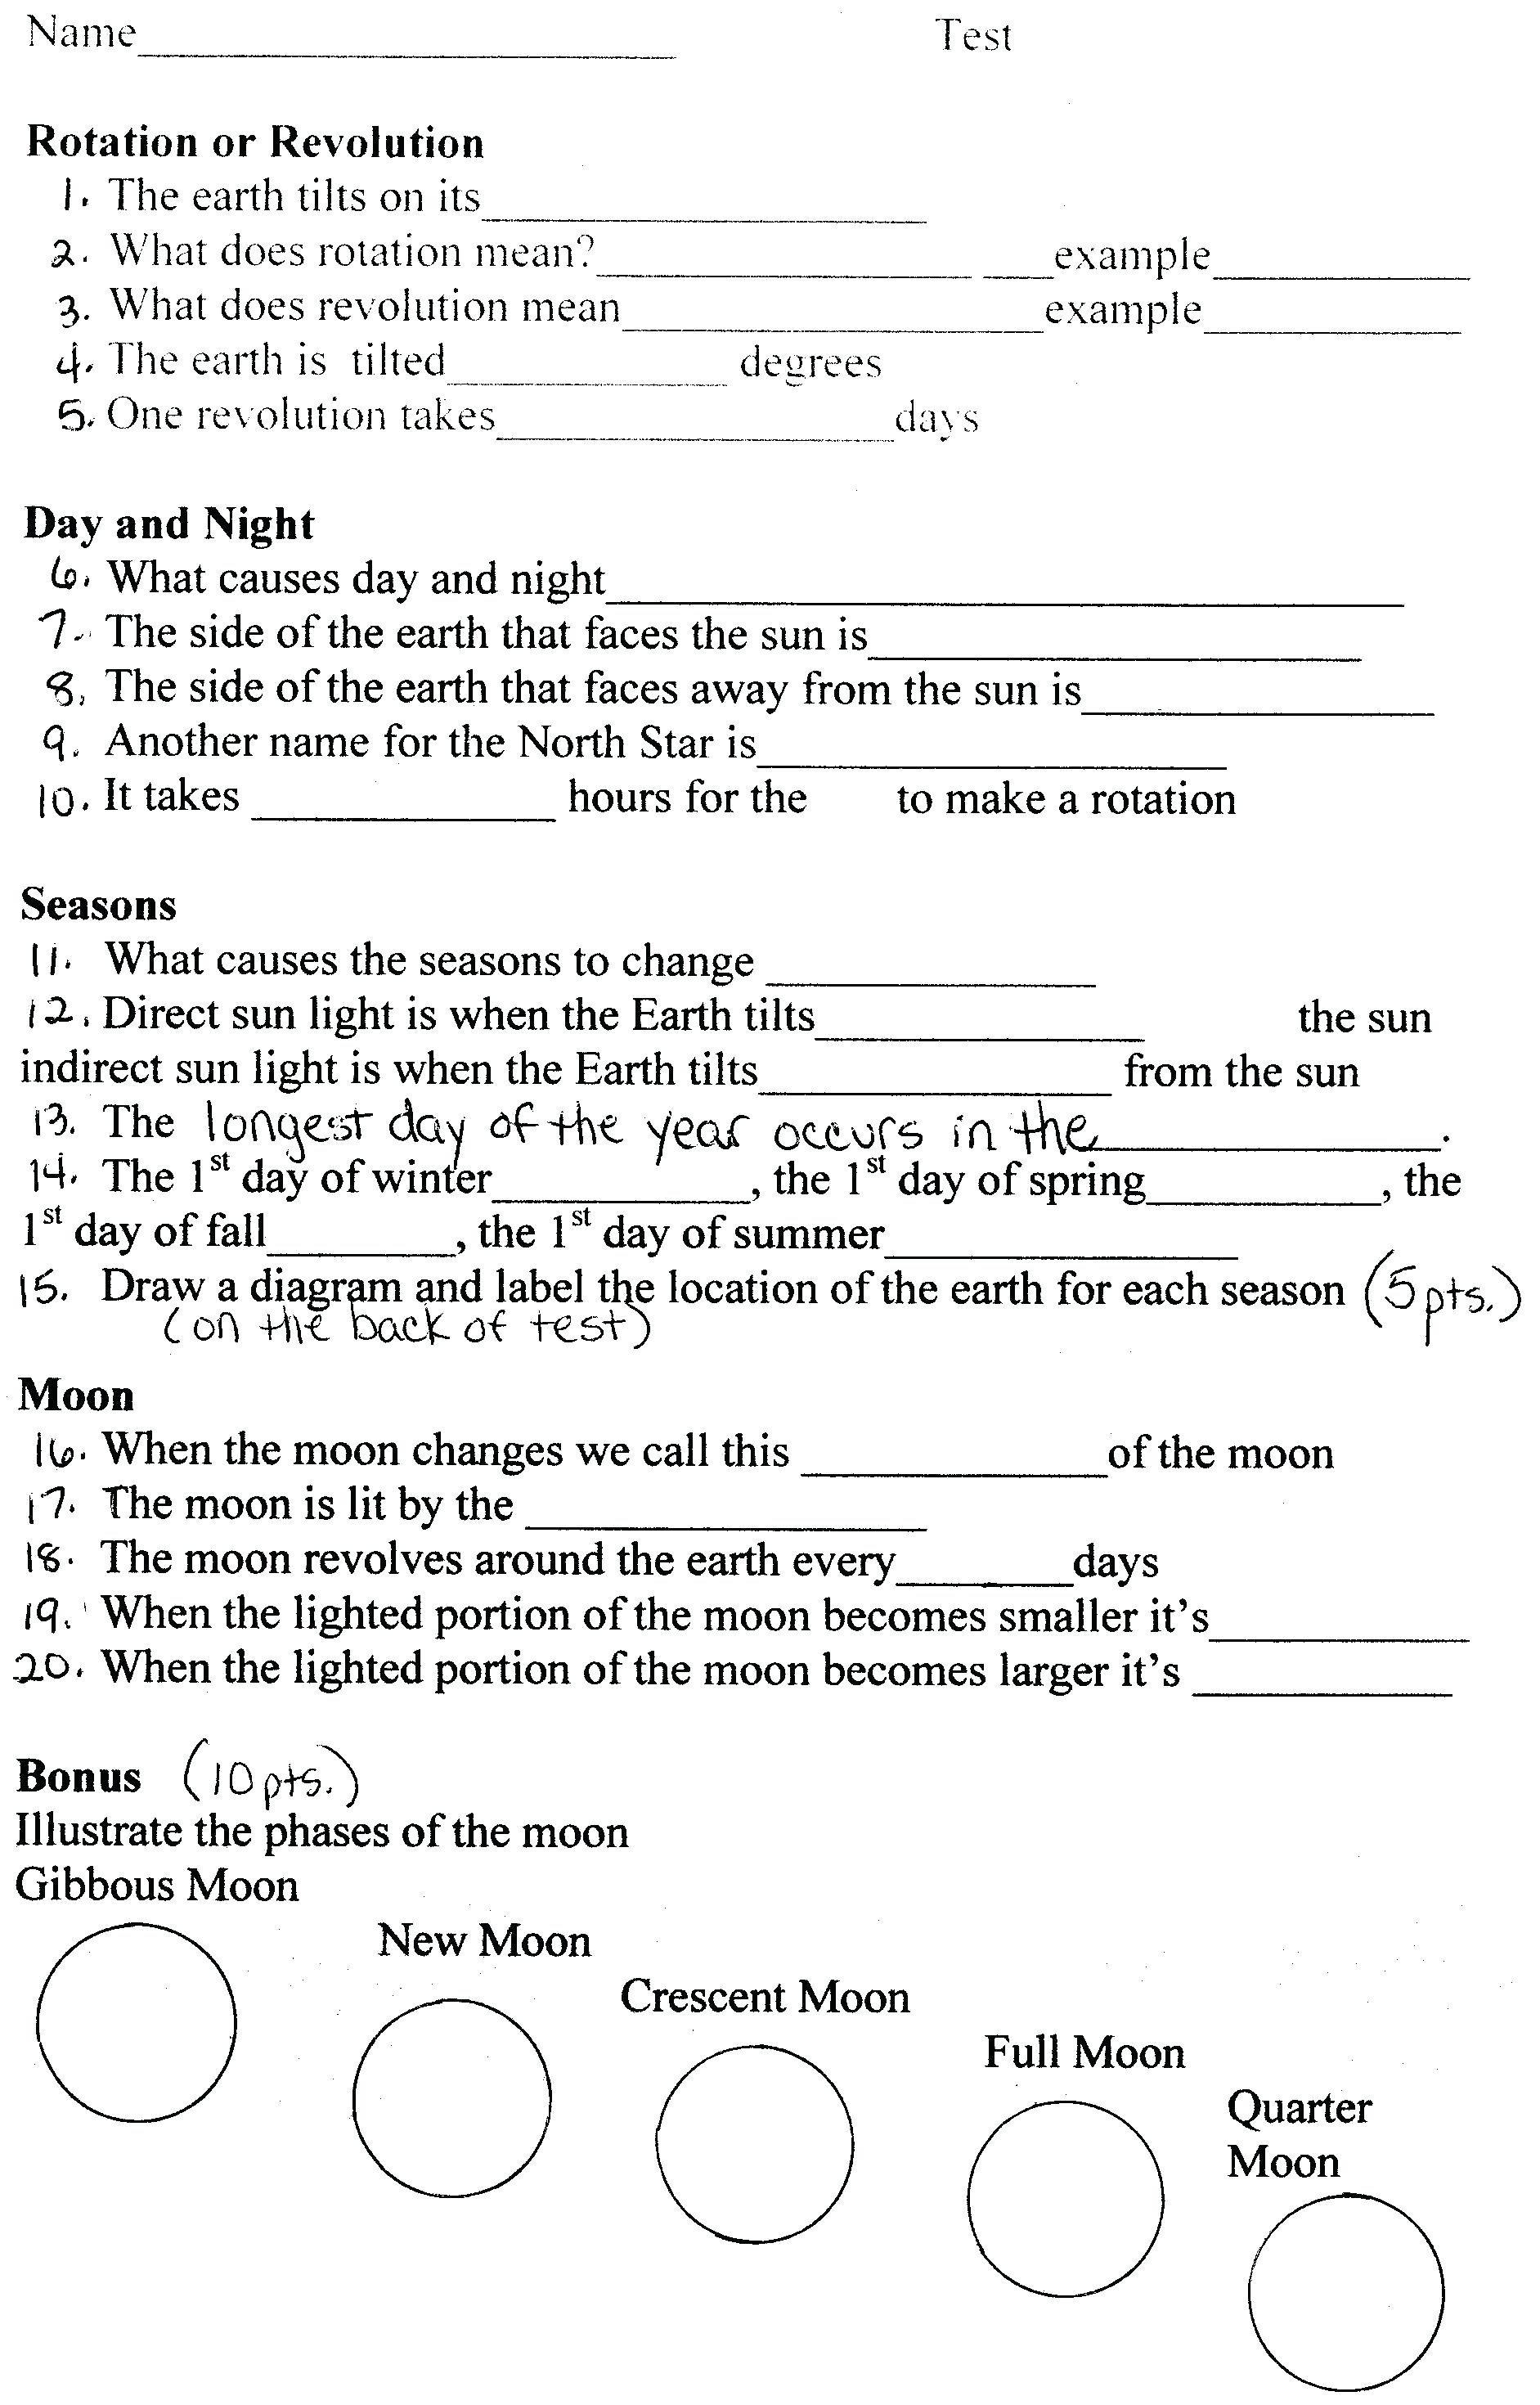 Phases Of The Moon Printable Worksheets  Yooob For Phases Of The Moon Printable Worksheets